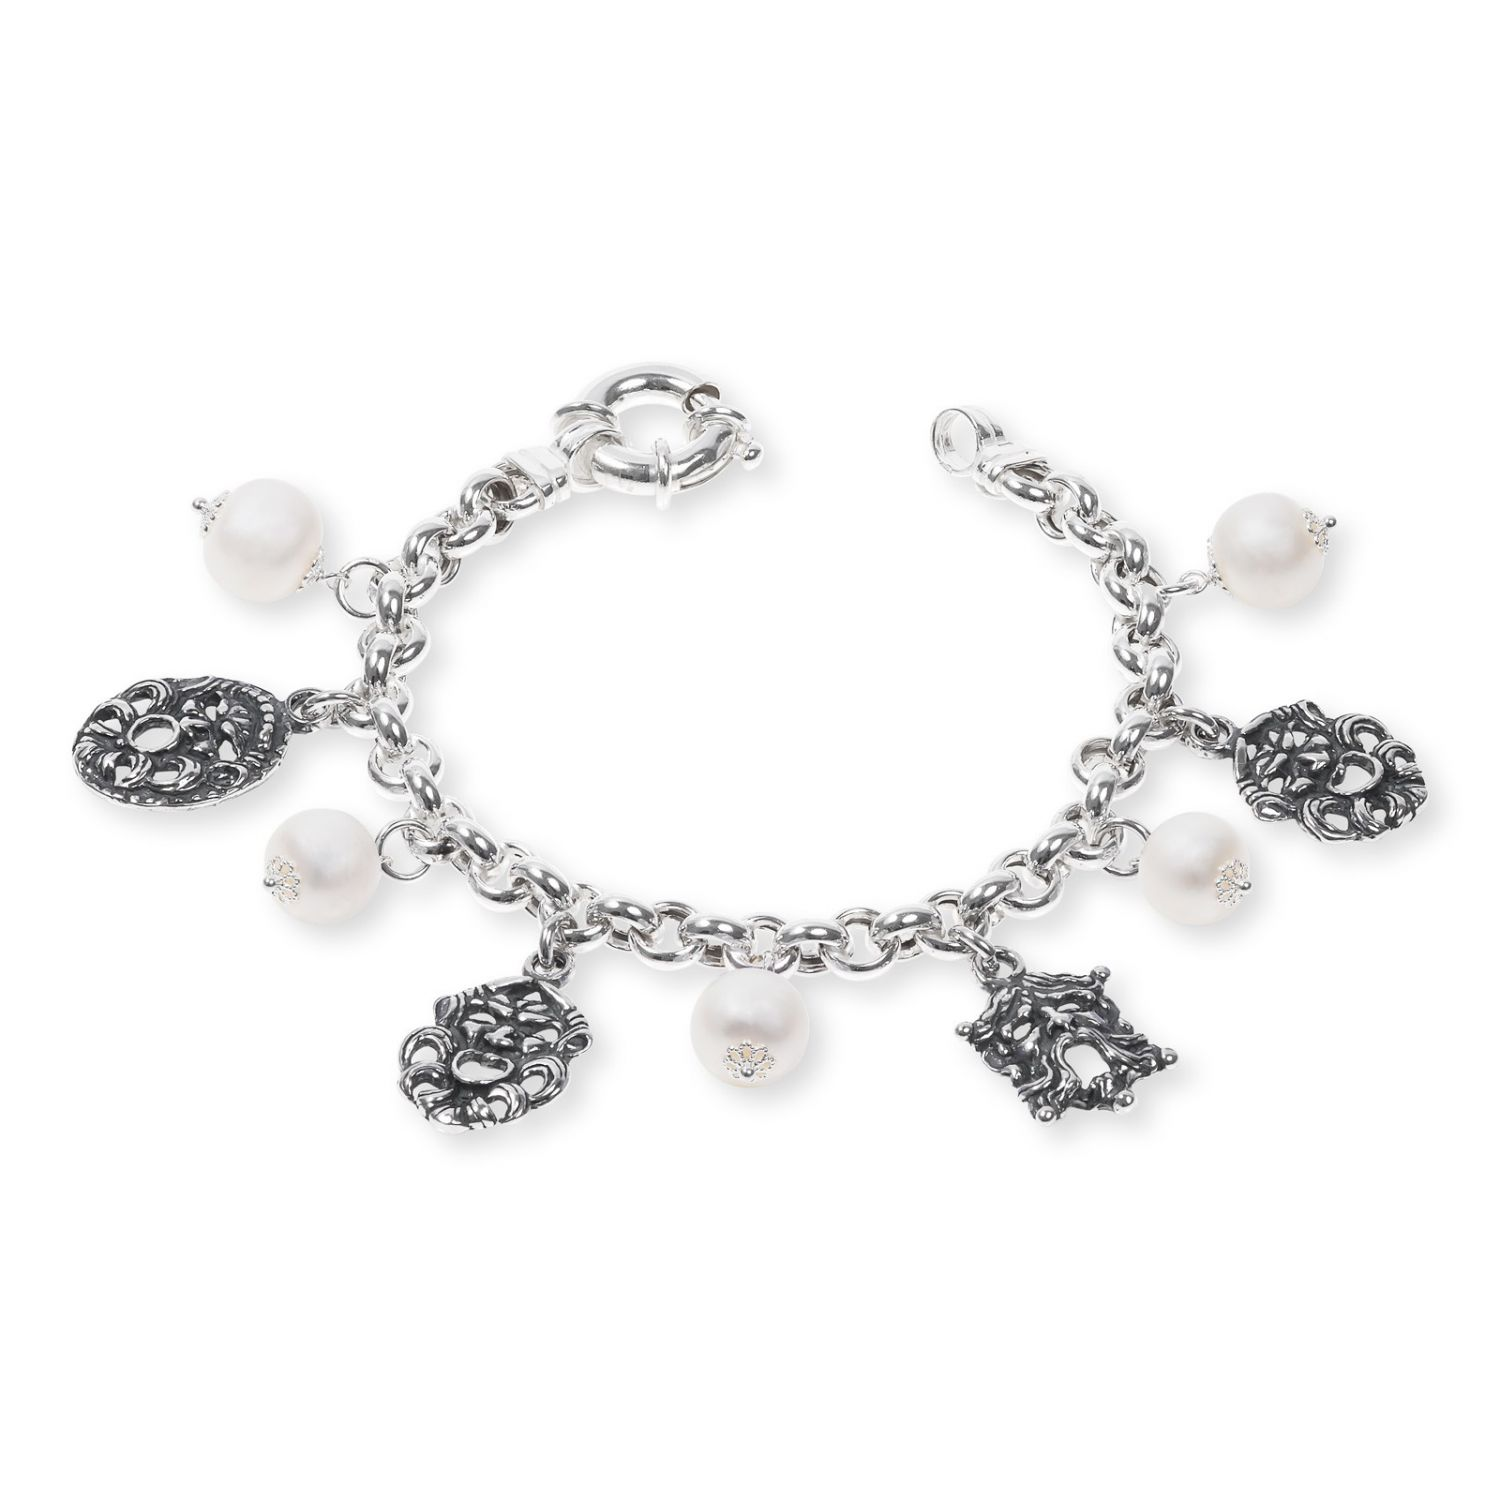 Silver Bracelet with pearls and masks (33687PB)